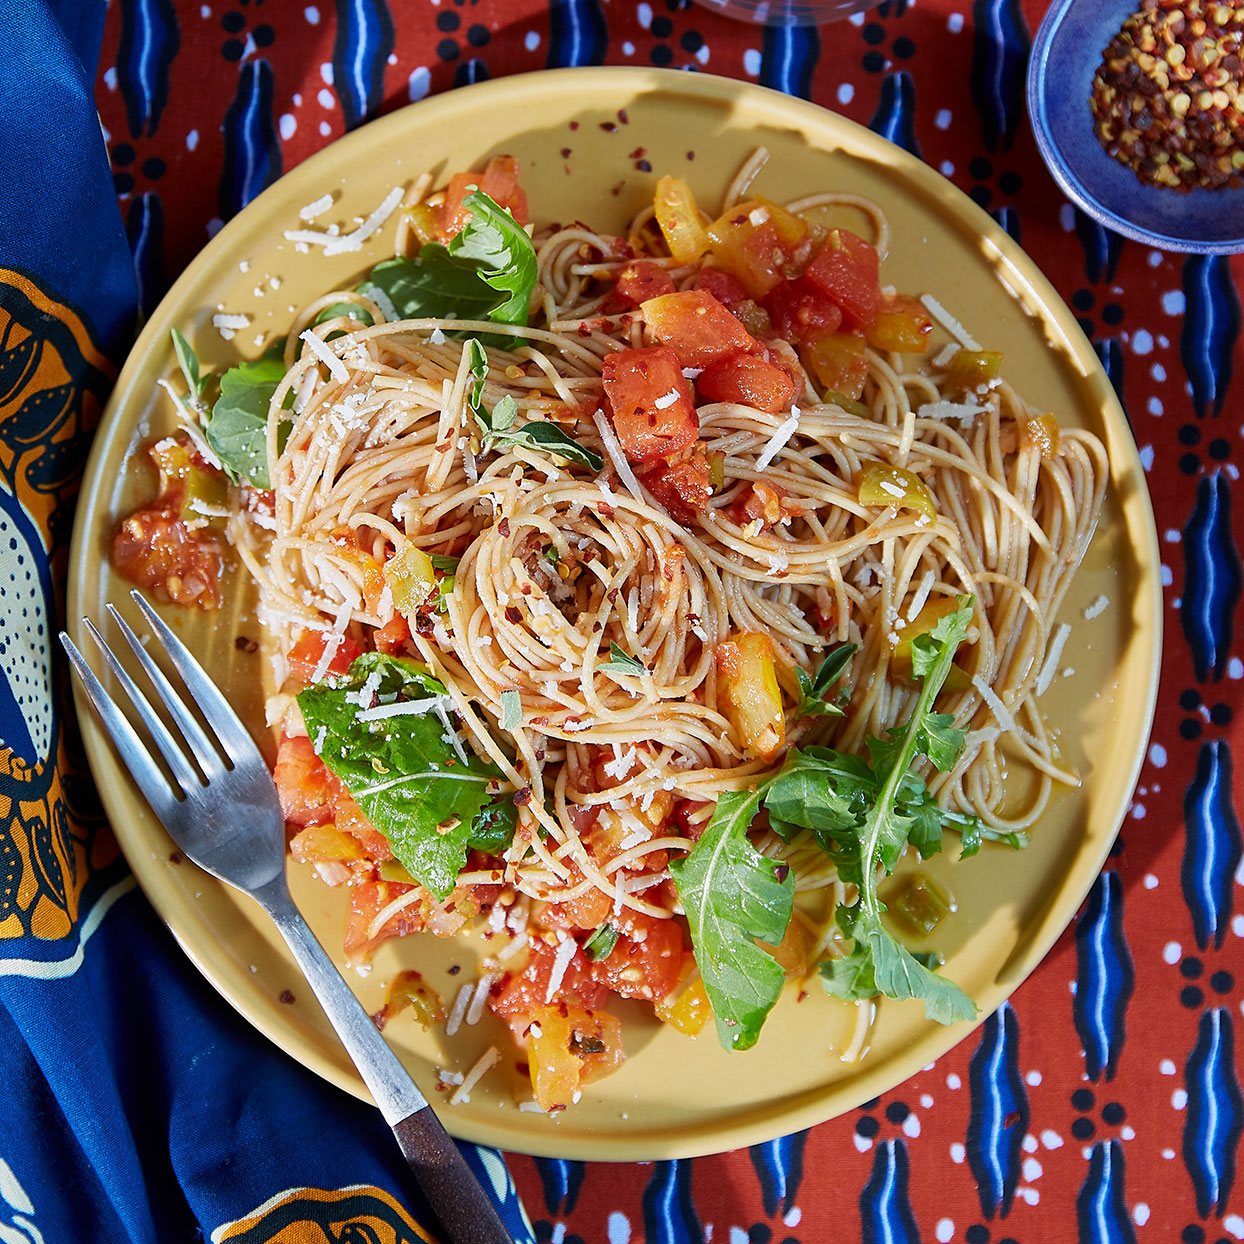 The simplicity of this healthy pasta recipe makes it good family fare. For a touch of heat, mild Anaheim chiles are augmented with crushed red pepper and garlic.Source: EatingWell Magazine, May 2020